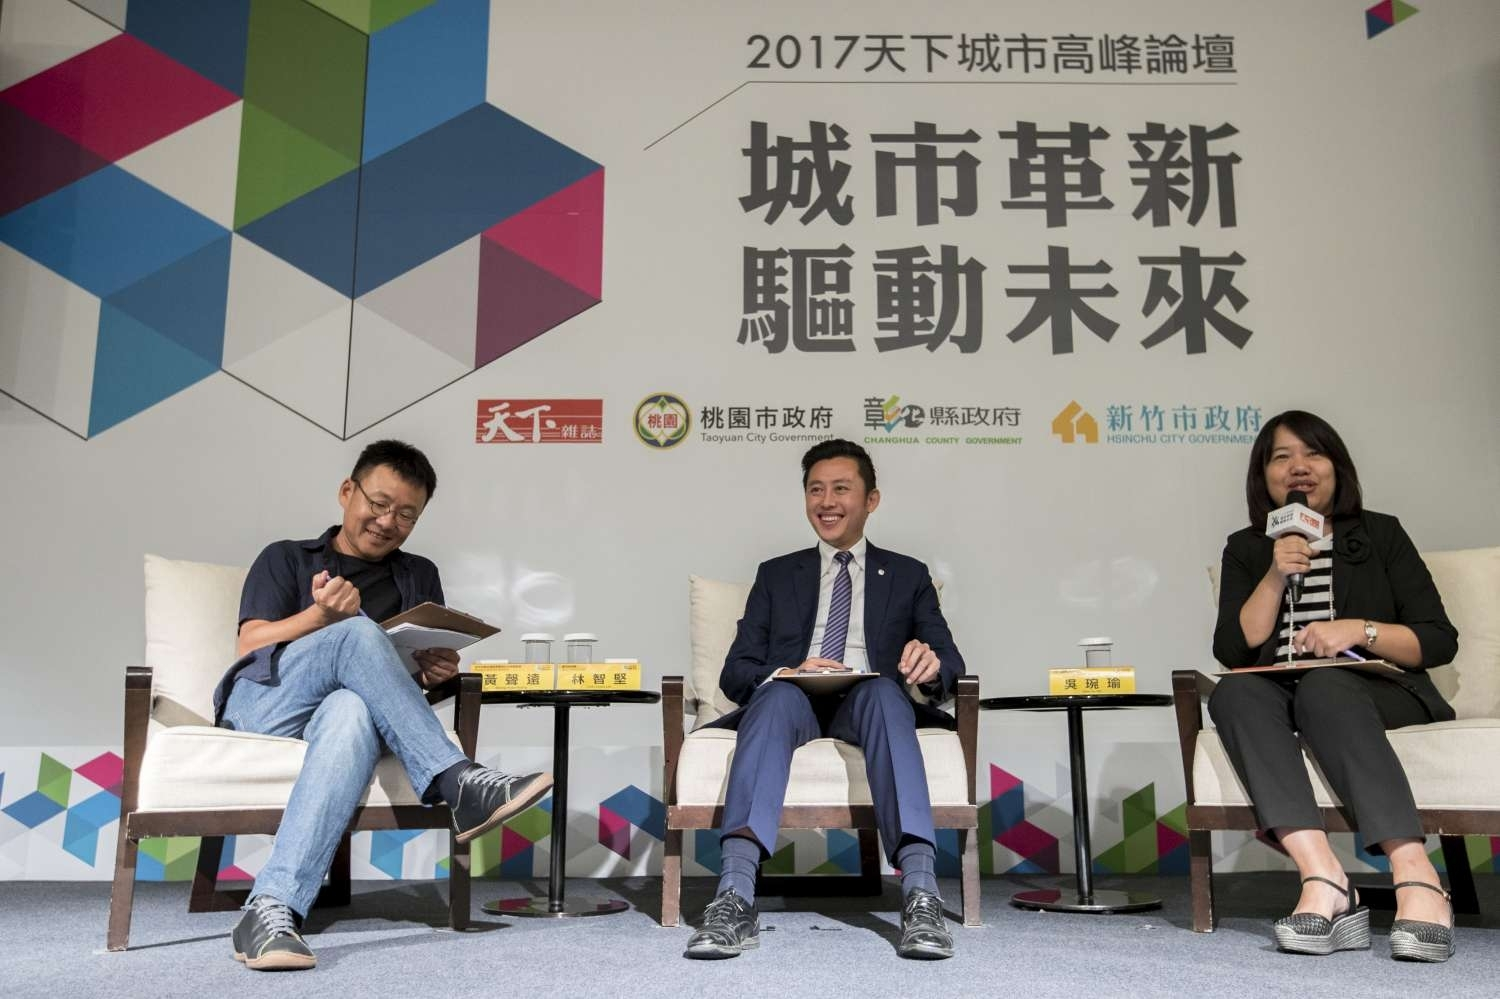 2017 Common Wealth Cities Summit, Mayor: Make Hsinchu a City Suitable for Living